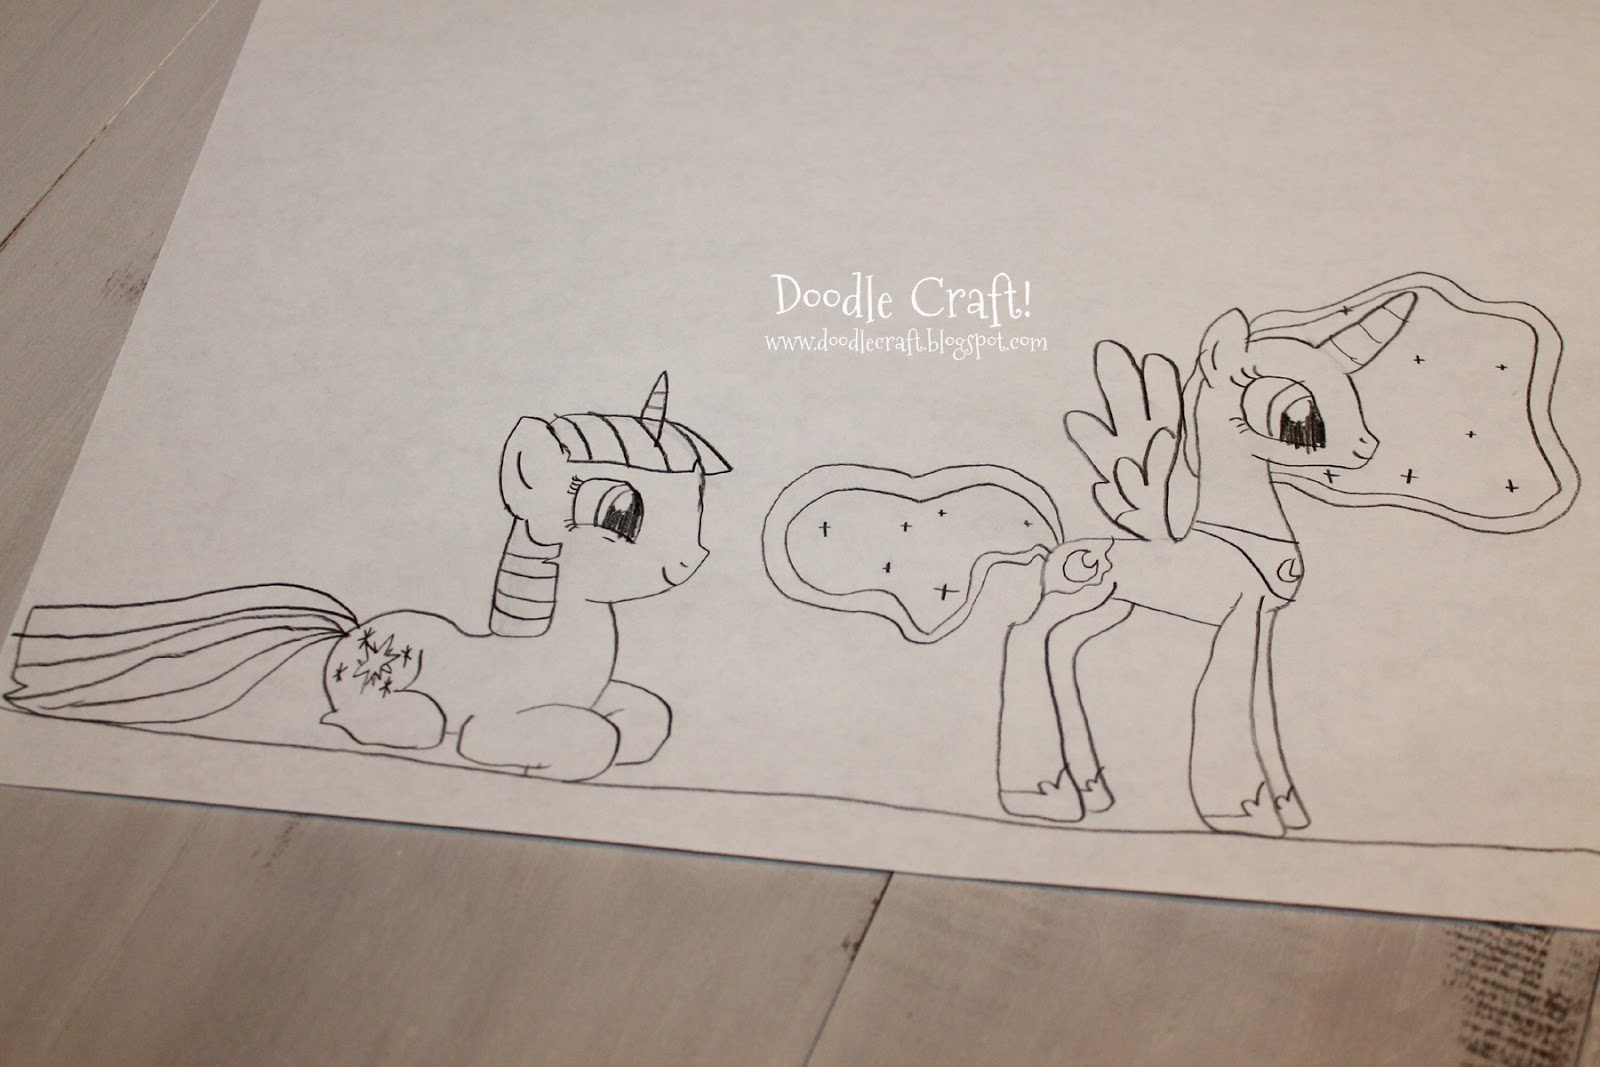 My little pony body drawing doodle craft design and draw your - My Little Pony Body Drawing Doodle Craft Design And Draw Your 8